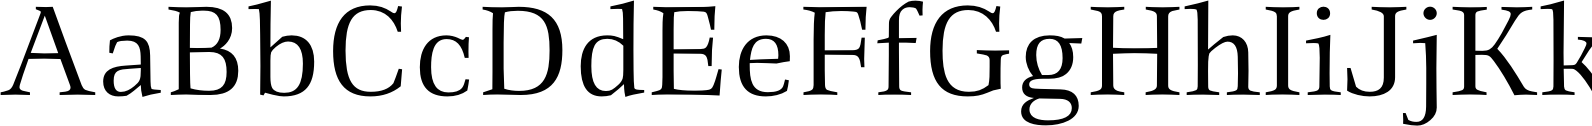 Richler Greek Regular Font